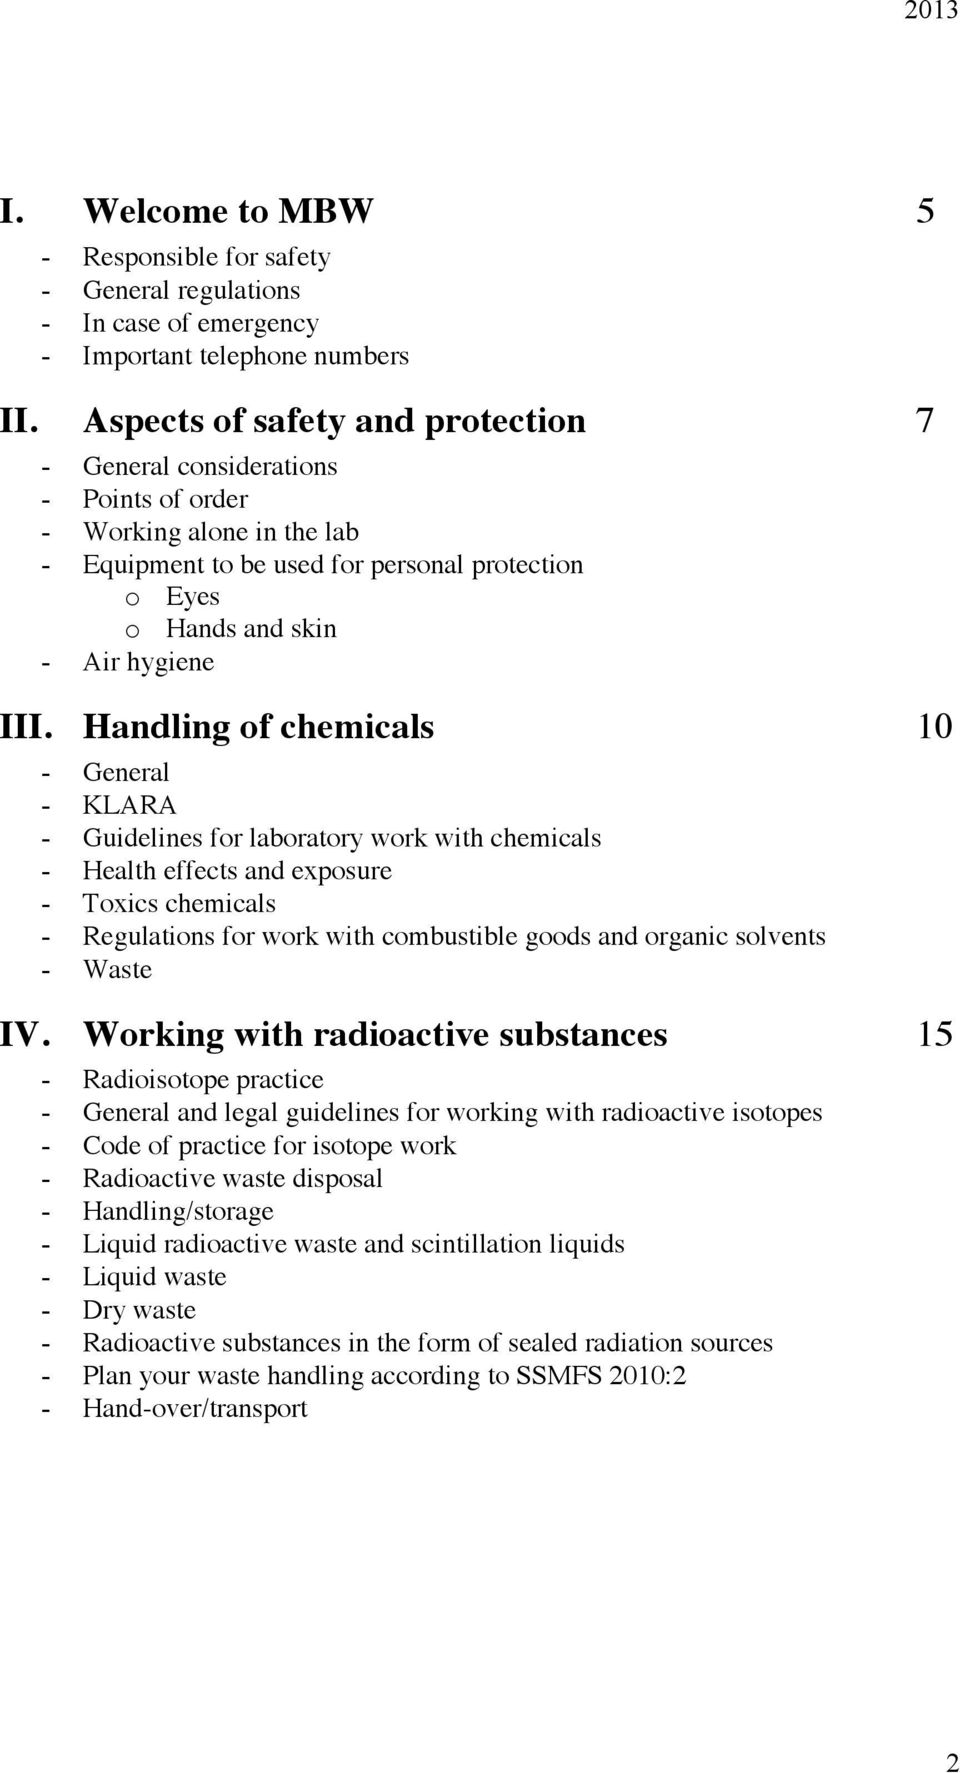 Handling of chemicals 10 - General - KLARA - Guidelines for laboratory work with chemicals - Health effects and exposure - Toxics chemicals - Regulations for work with combustible goods and organic